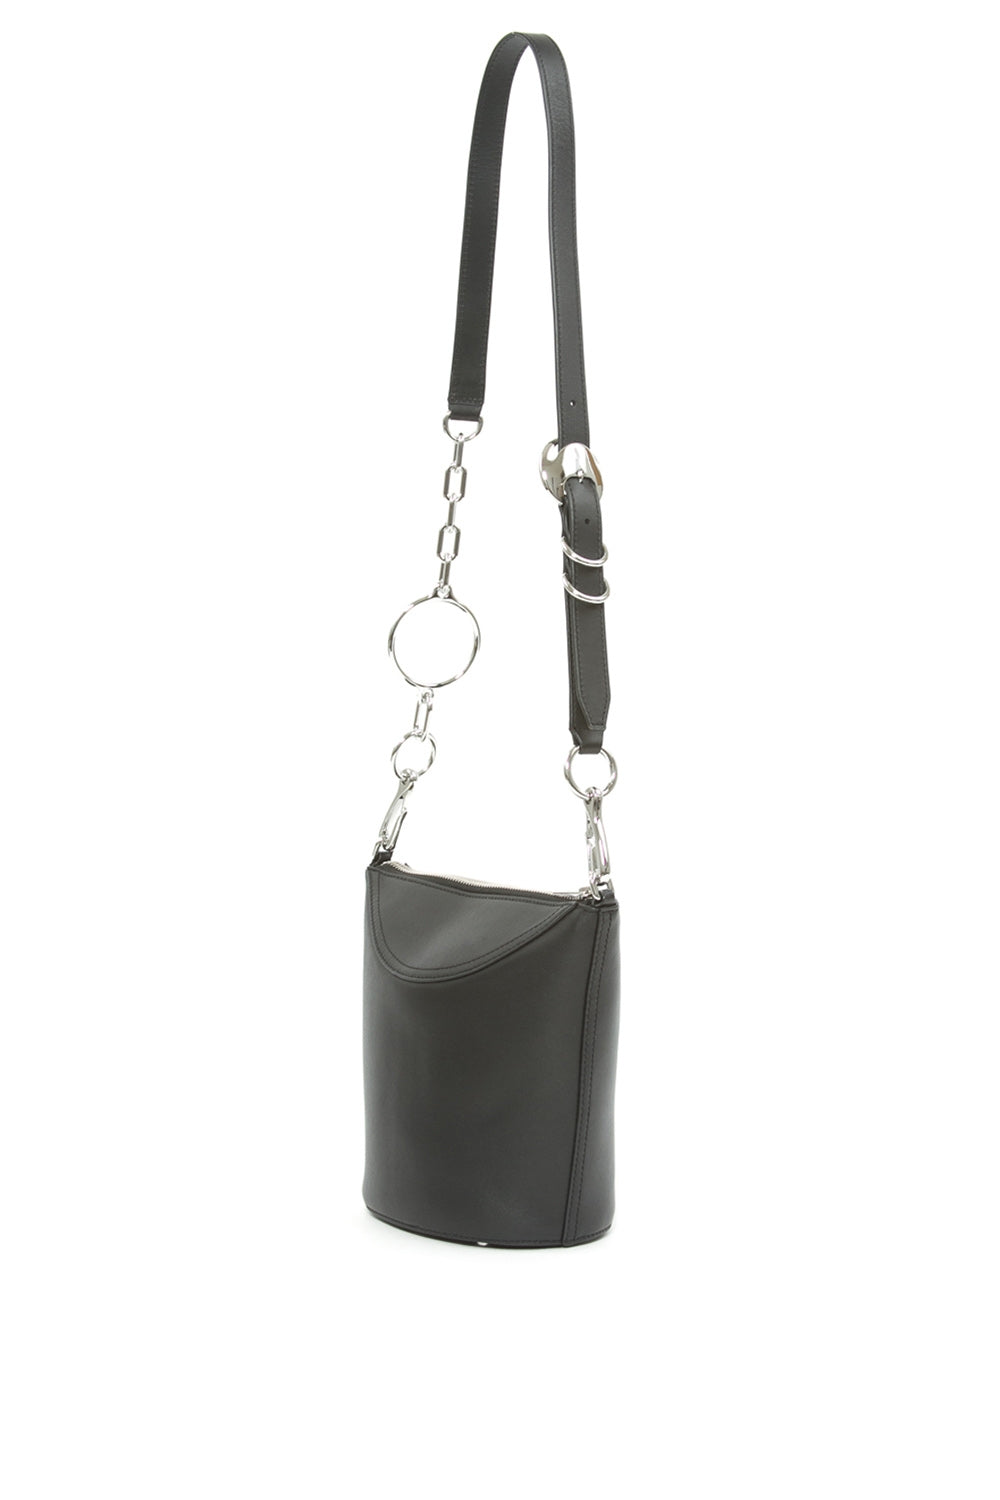 ALEXANDER WANGAce Leather Crossbody Bag18683